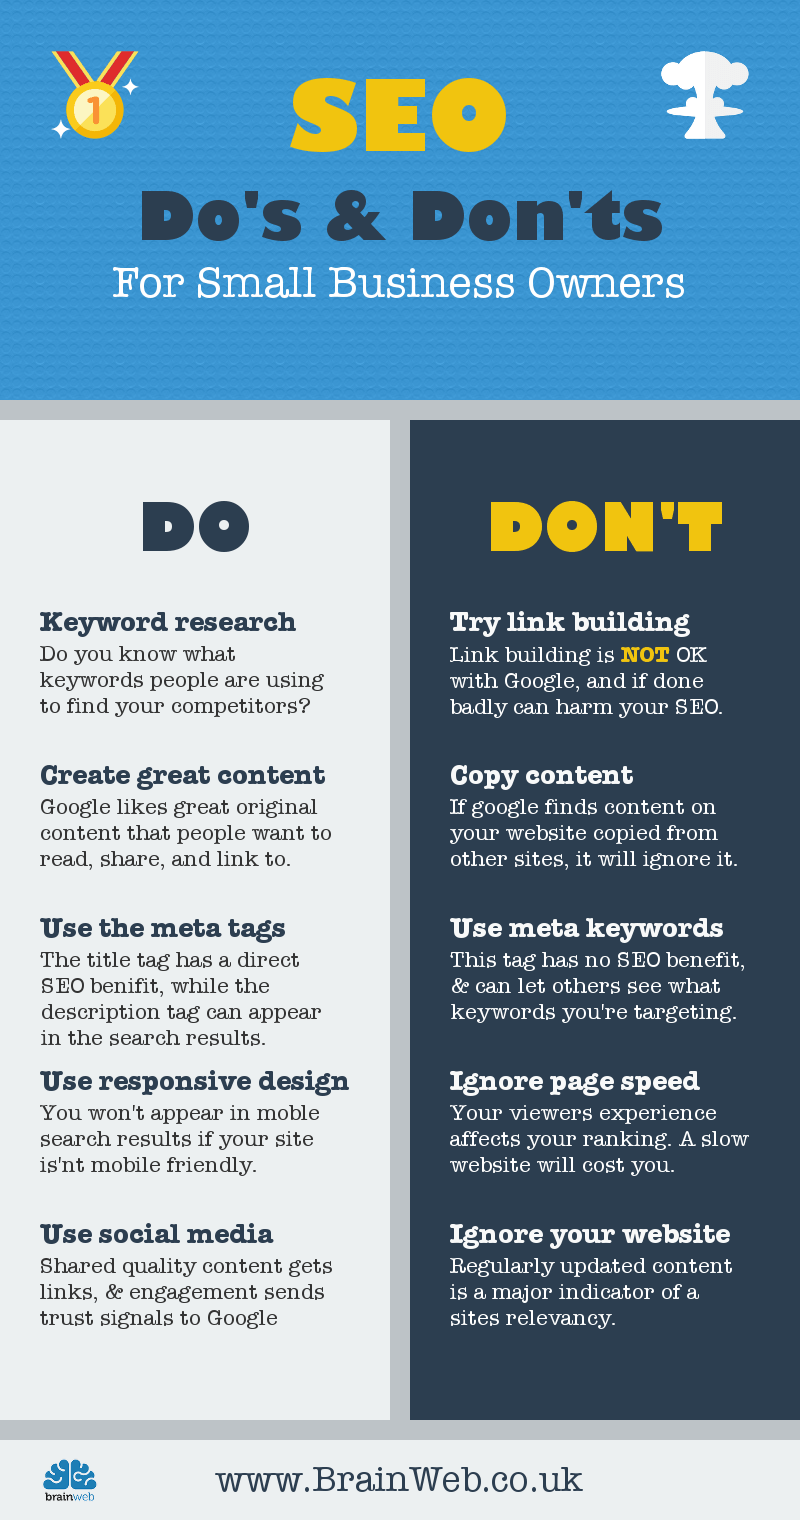 Small Business SEO Dos Don'ts infographic